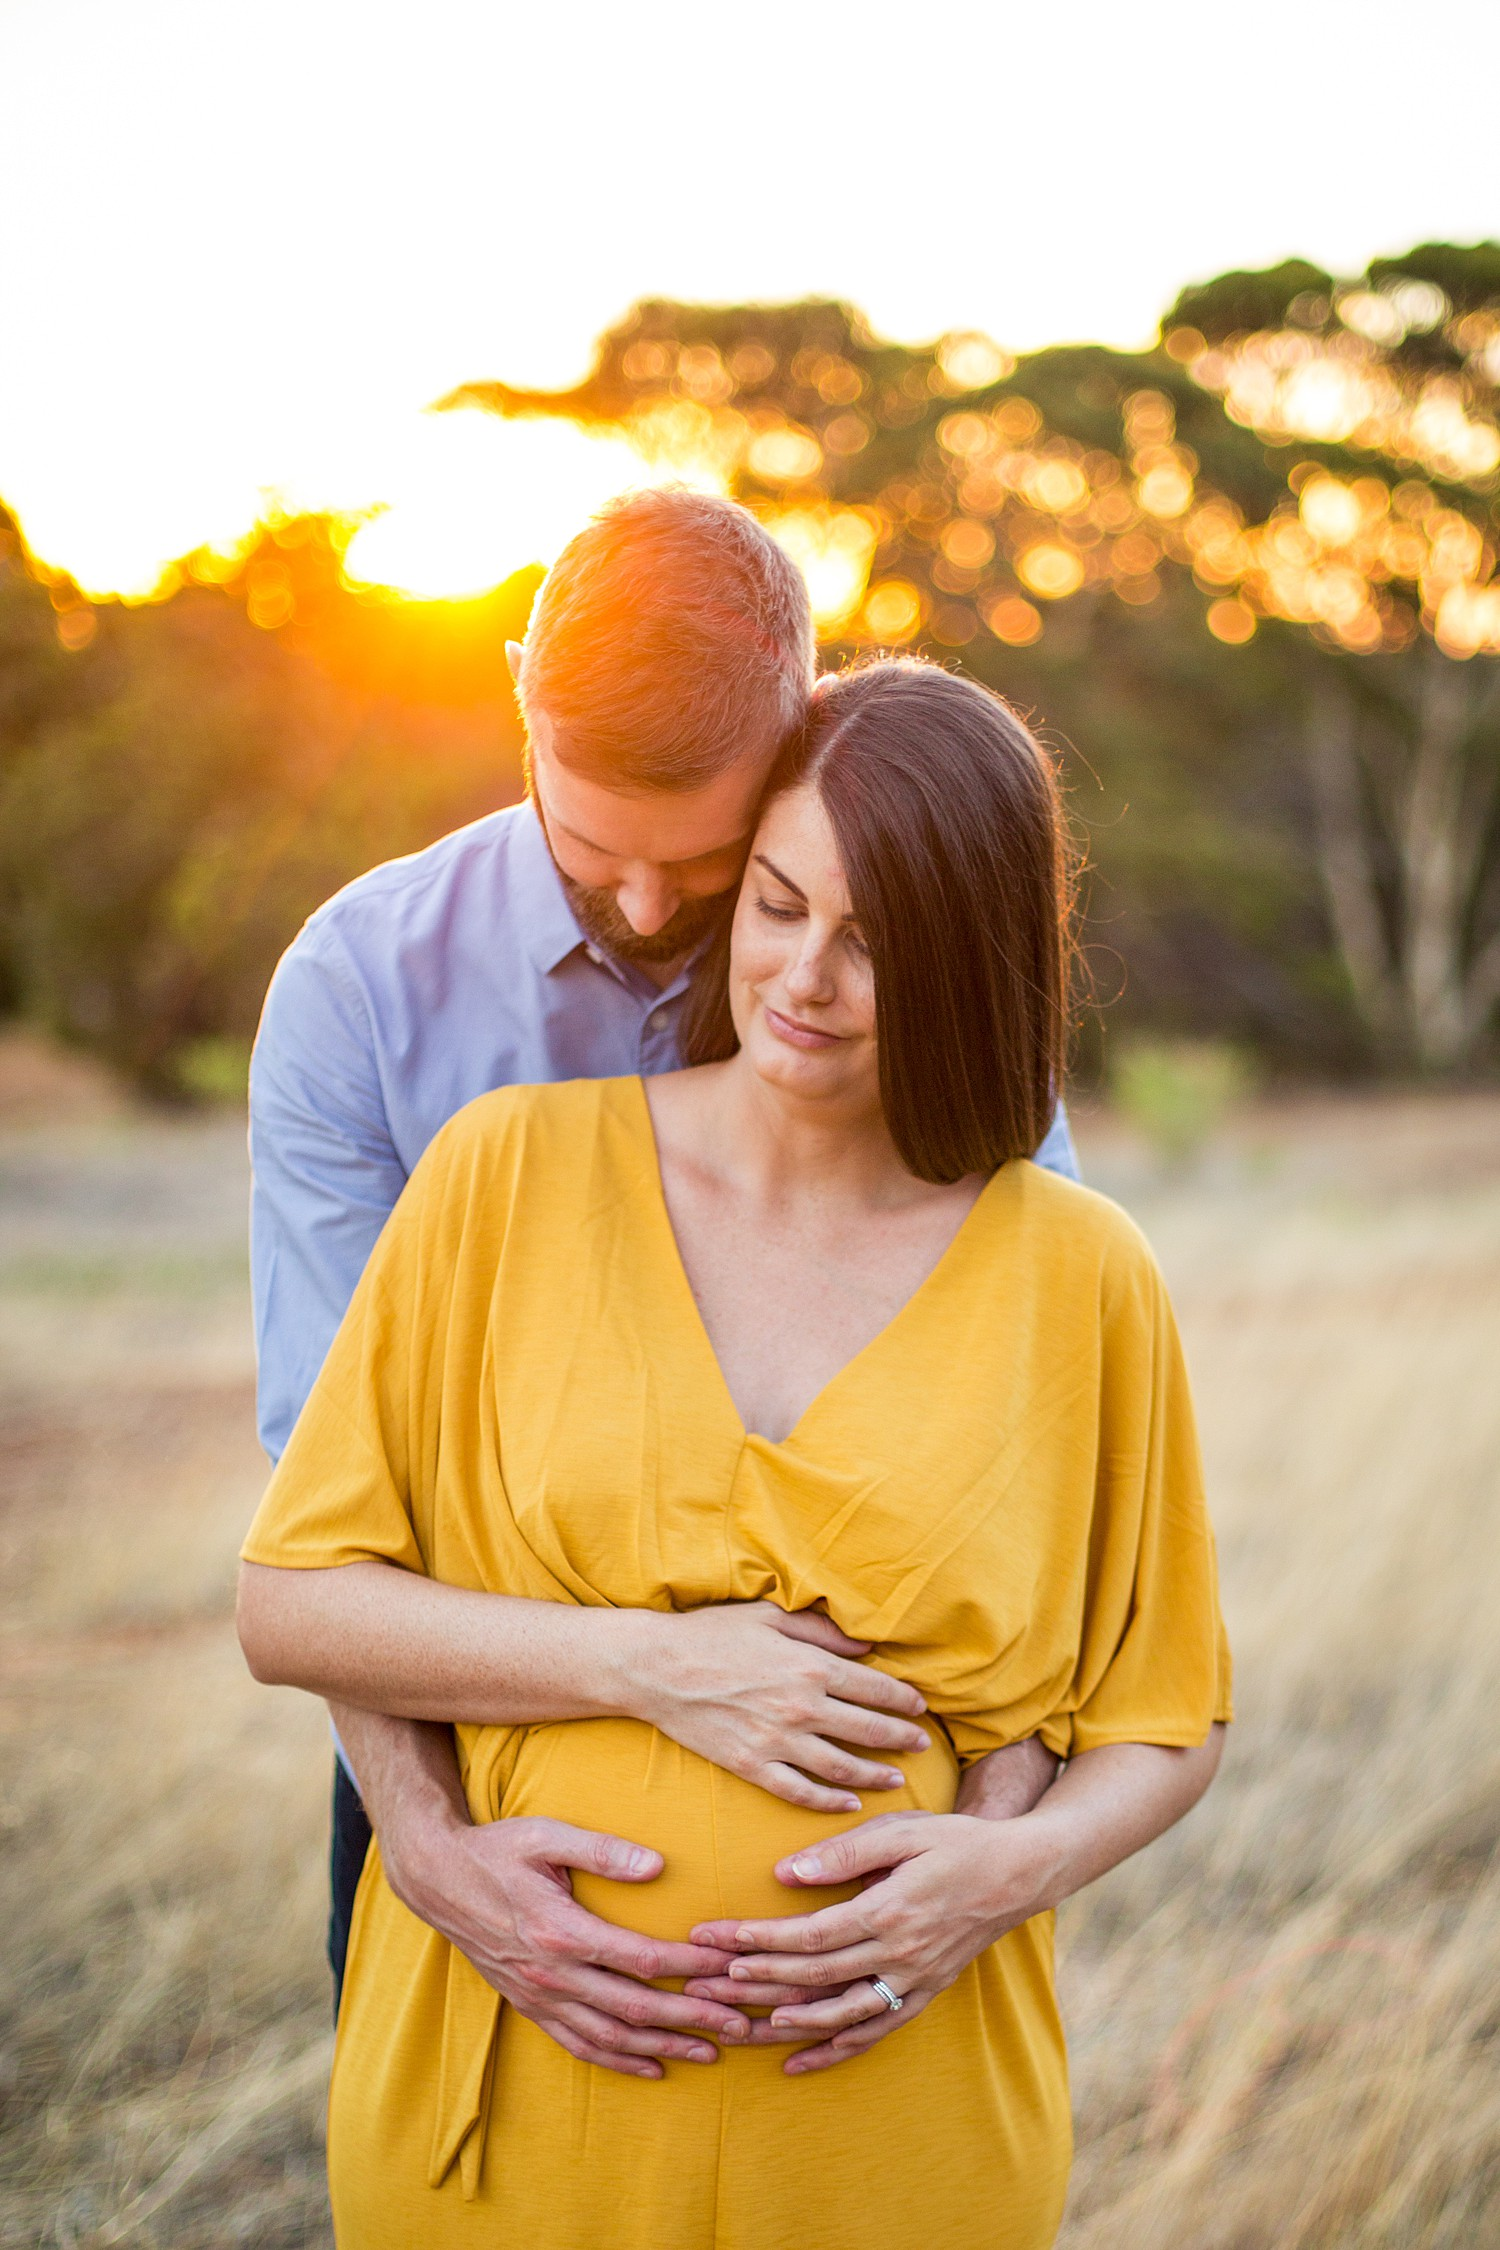 perth_hills_bush_maternity_photography_0016.jpg